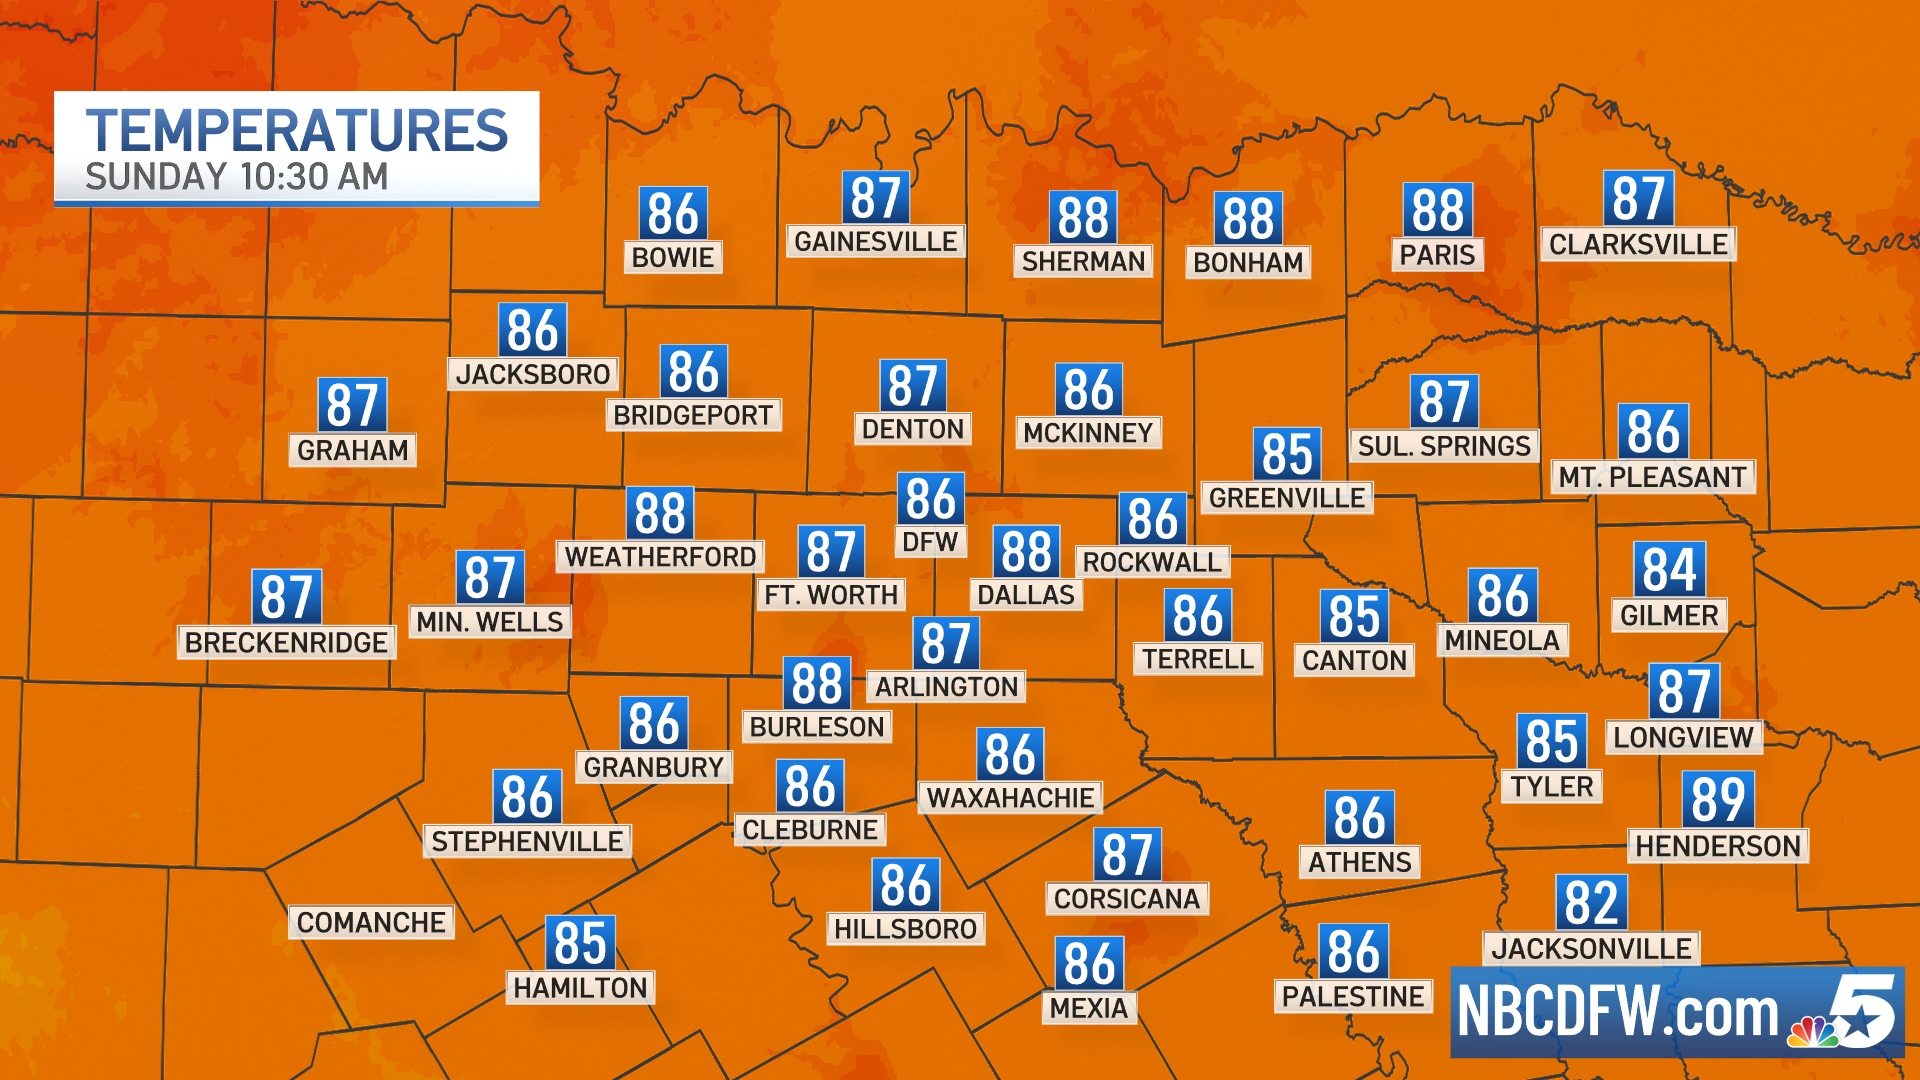 North Texas Temps